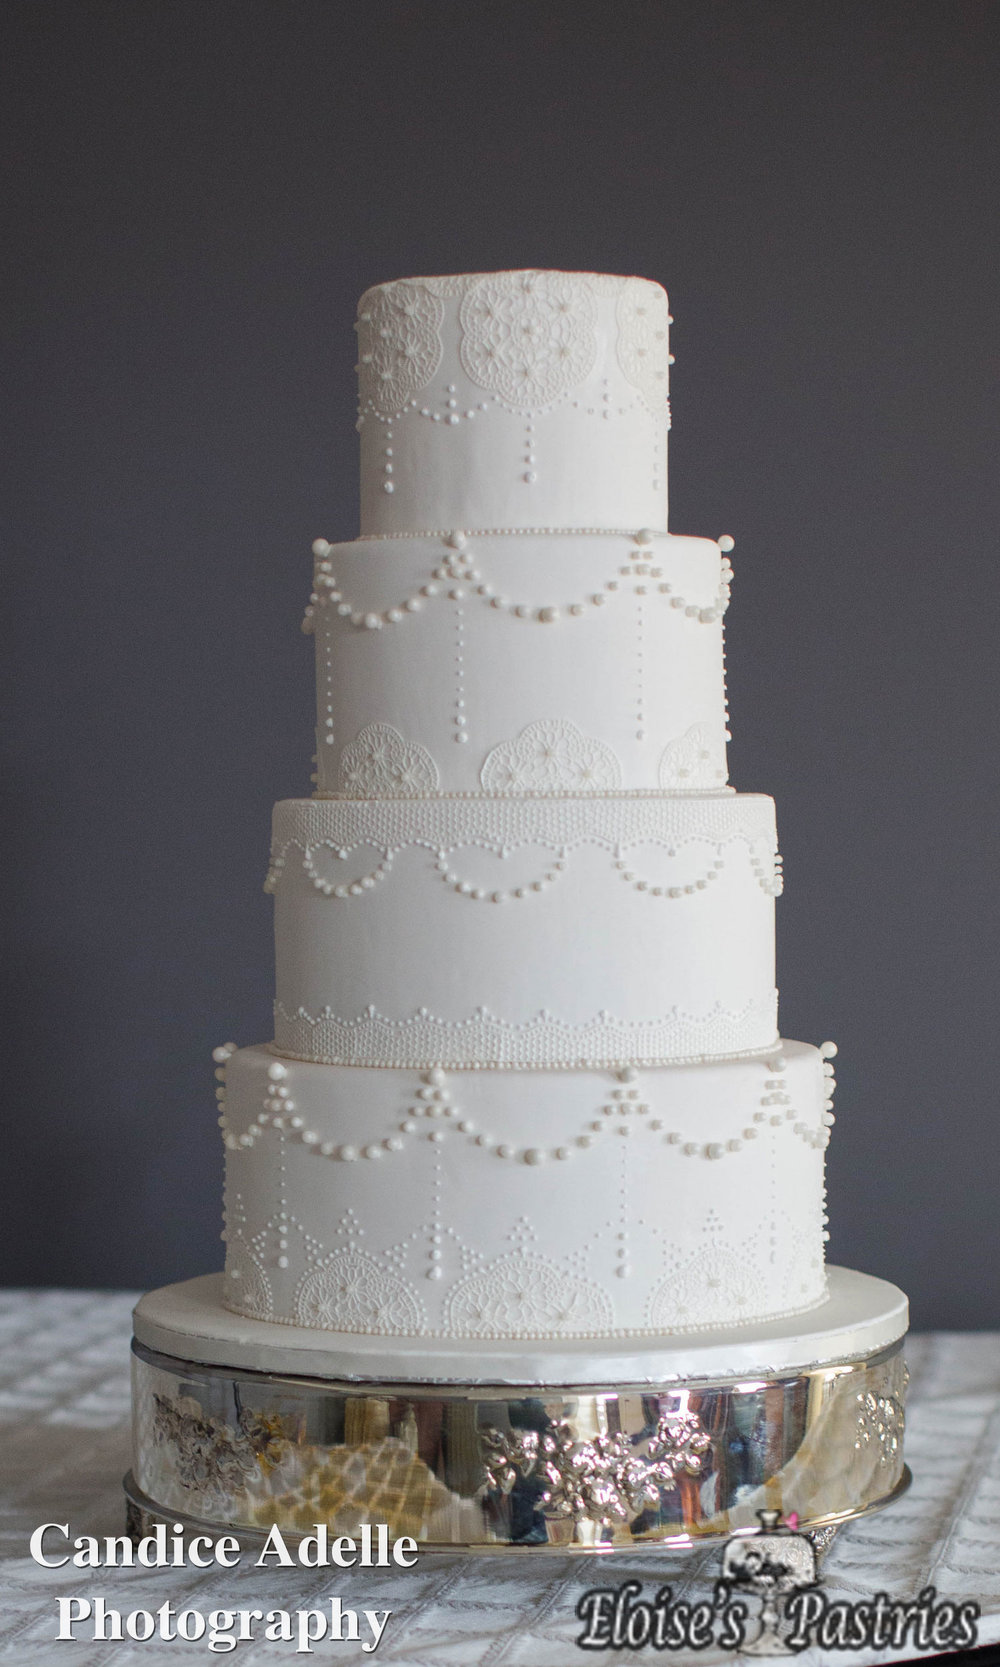 Fancy Intricate Detailed White Wedding Cake